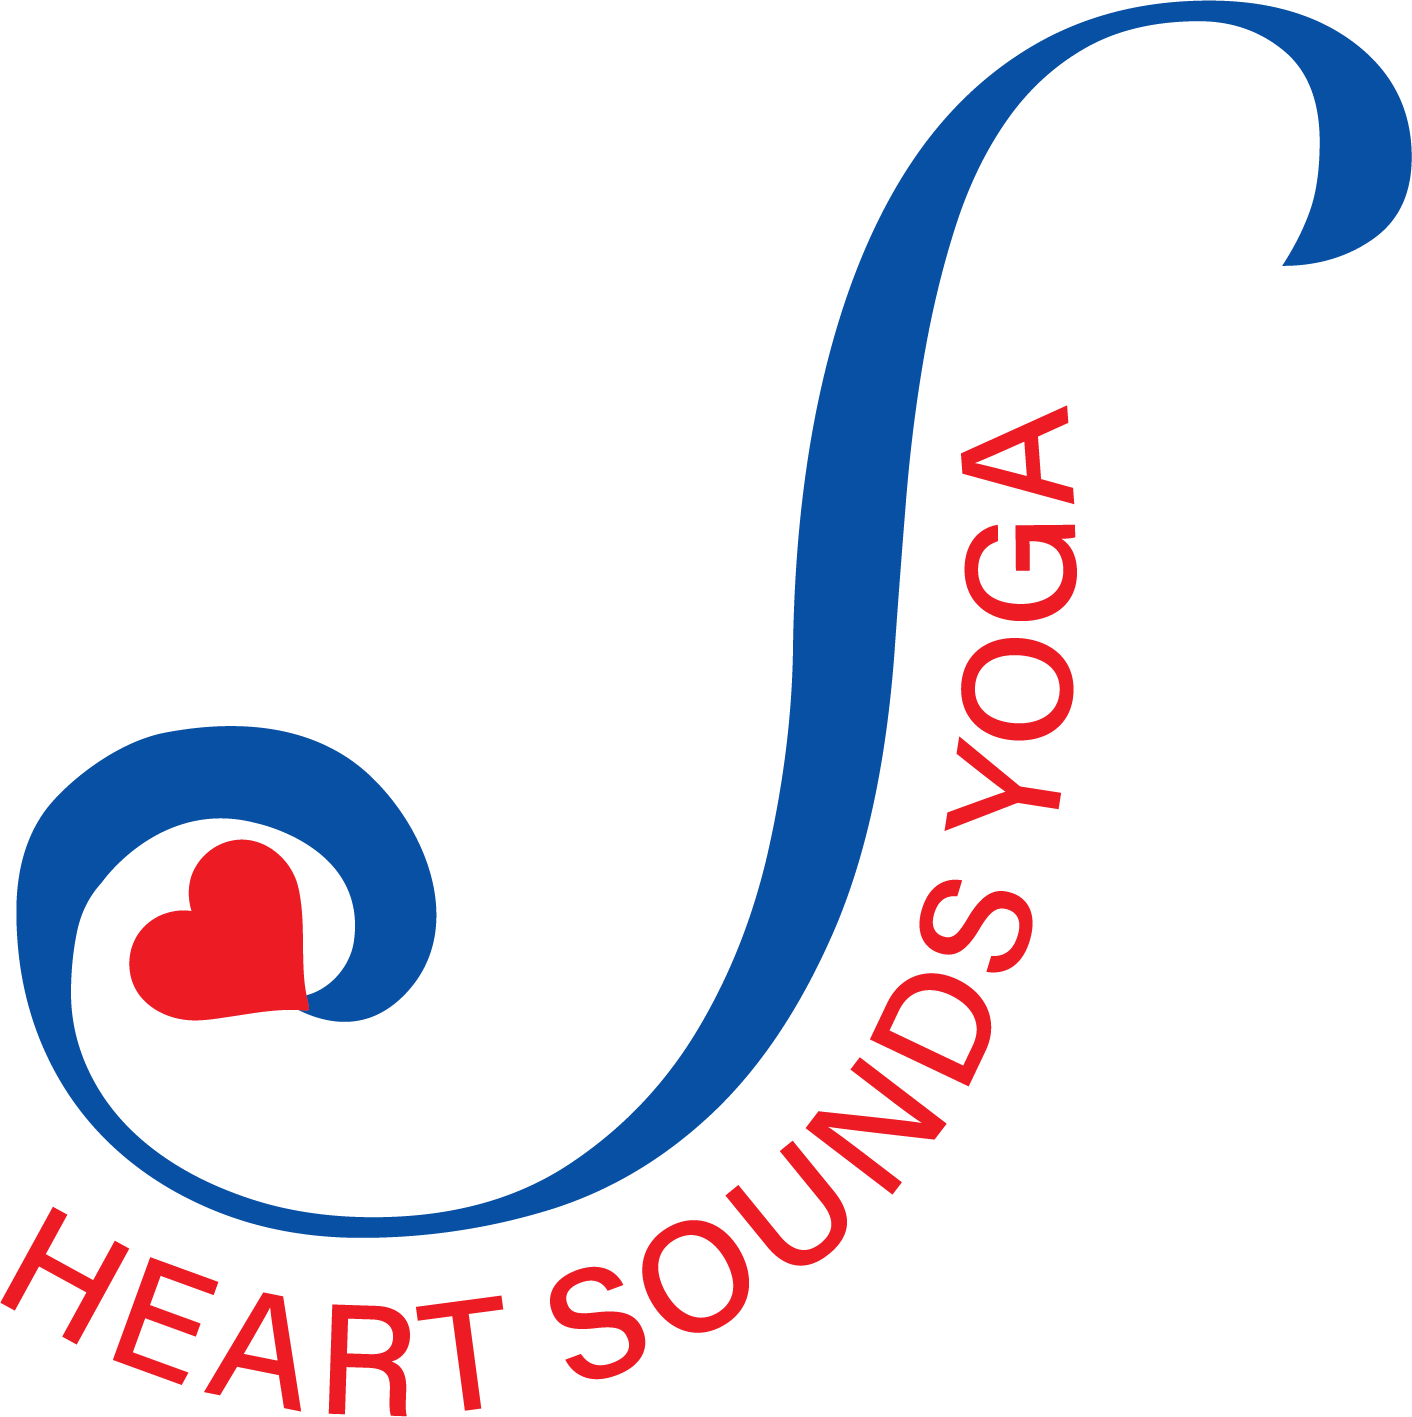 Heart Sounds Yoga